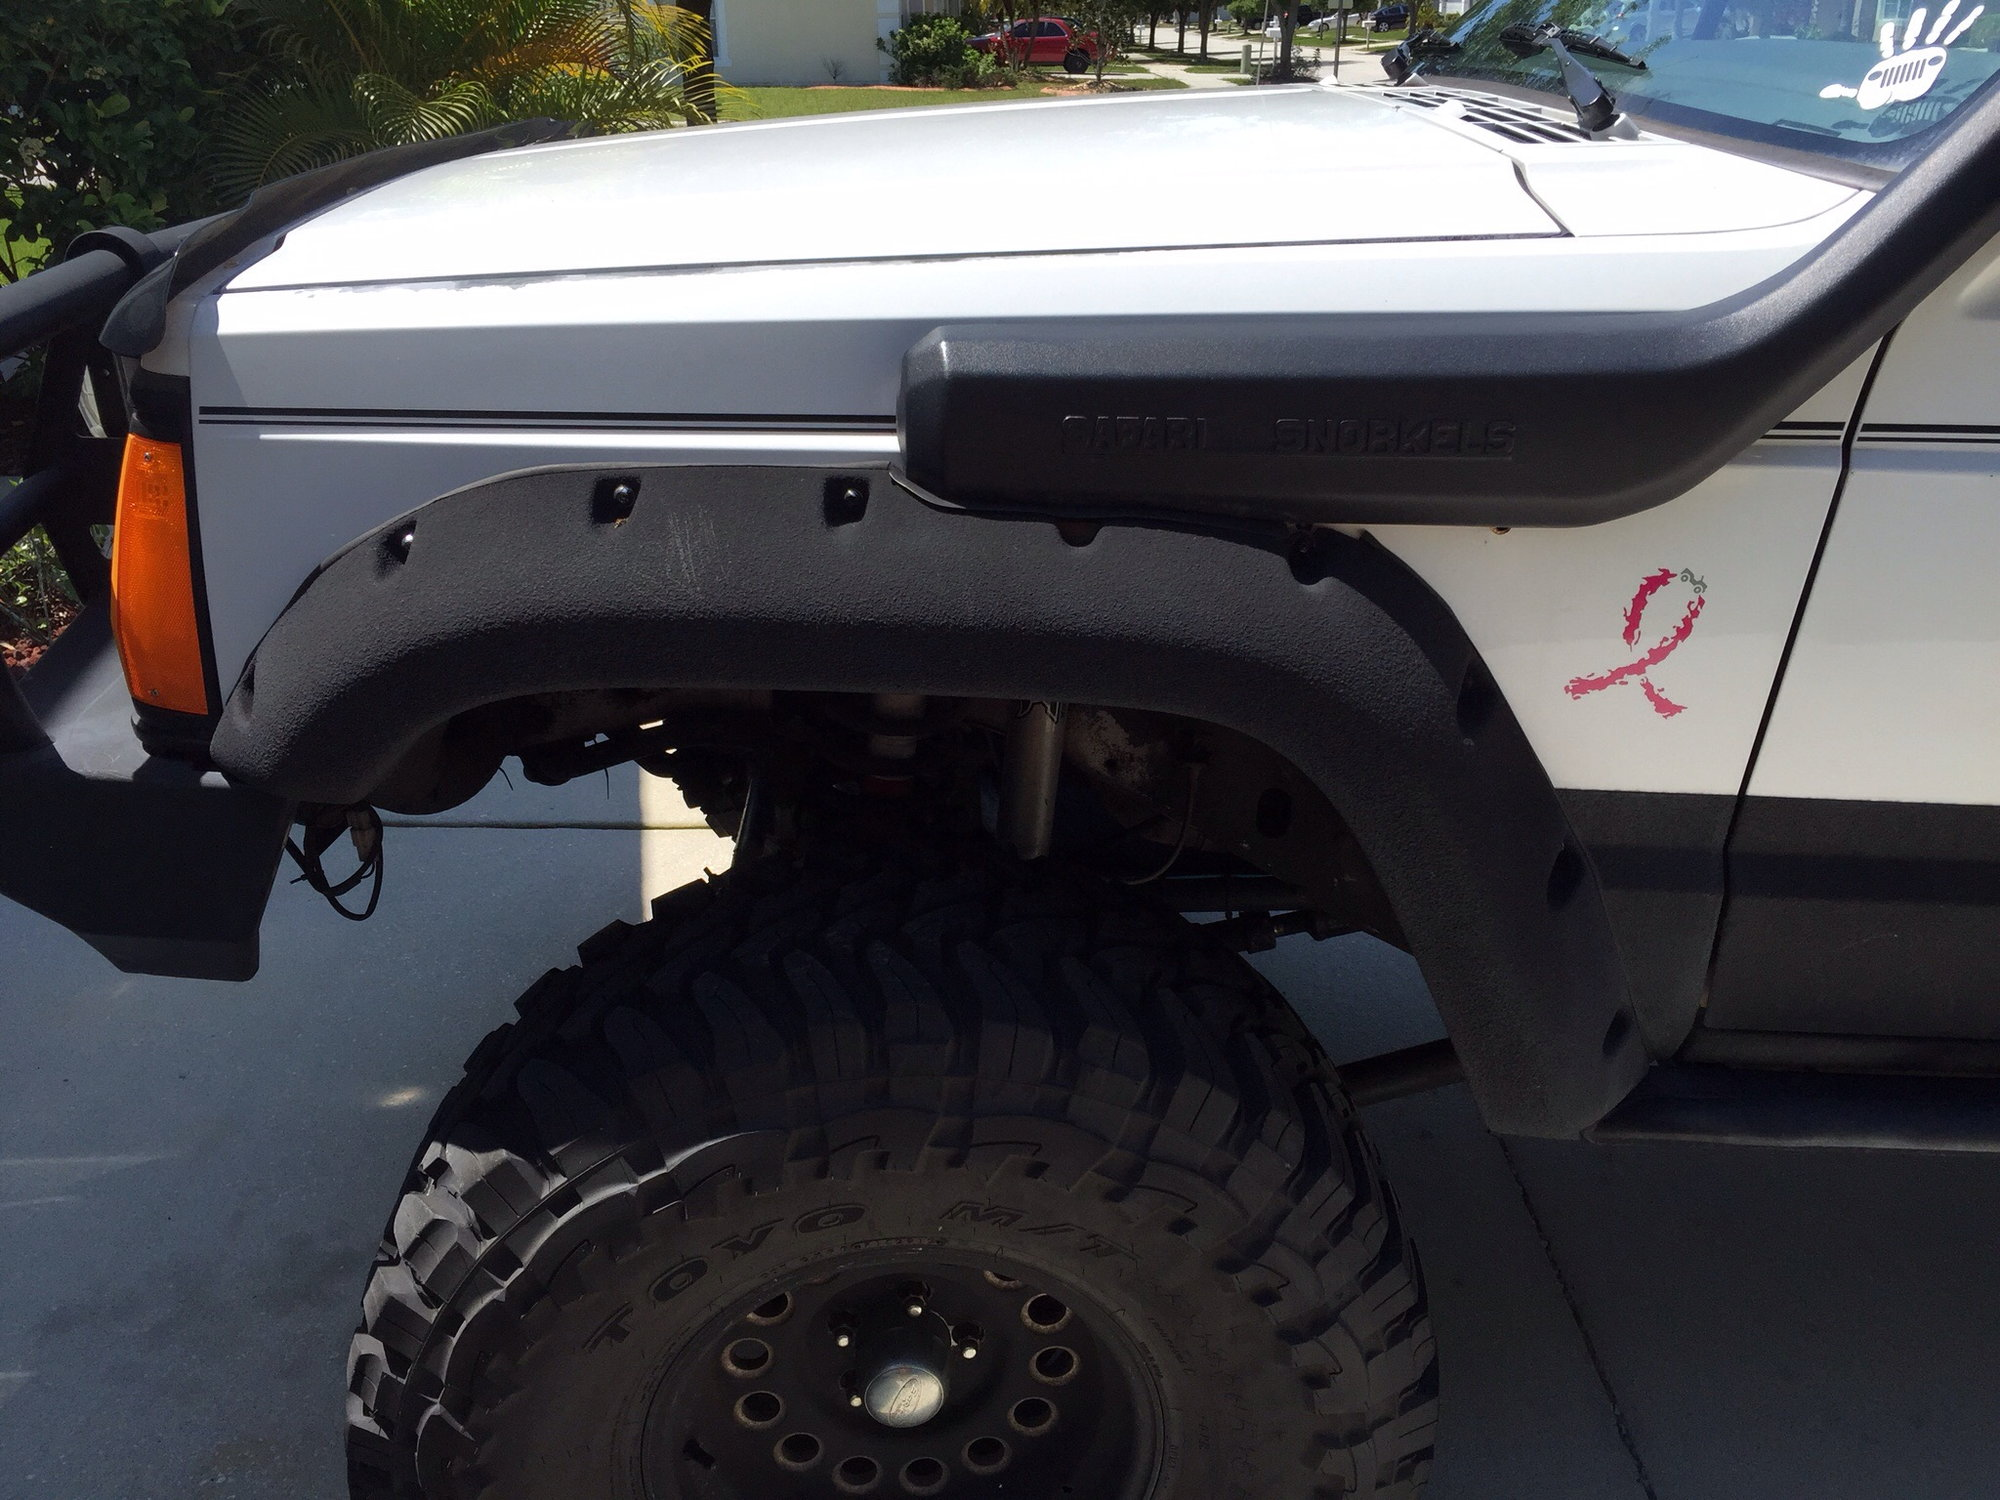 Naked Fender Flares - Vendors- members making products for